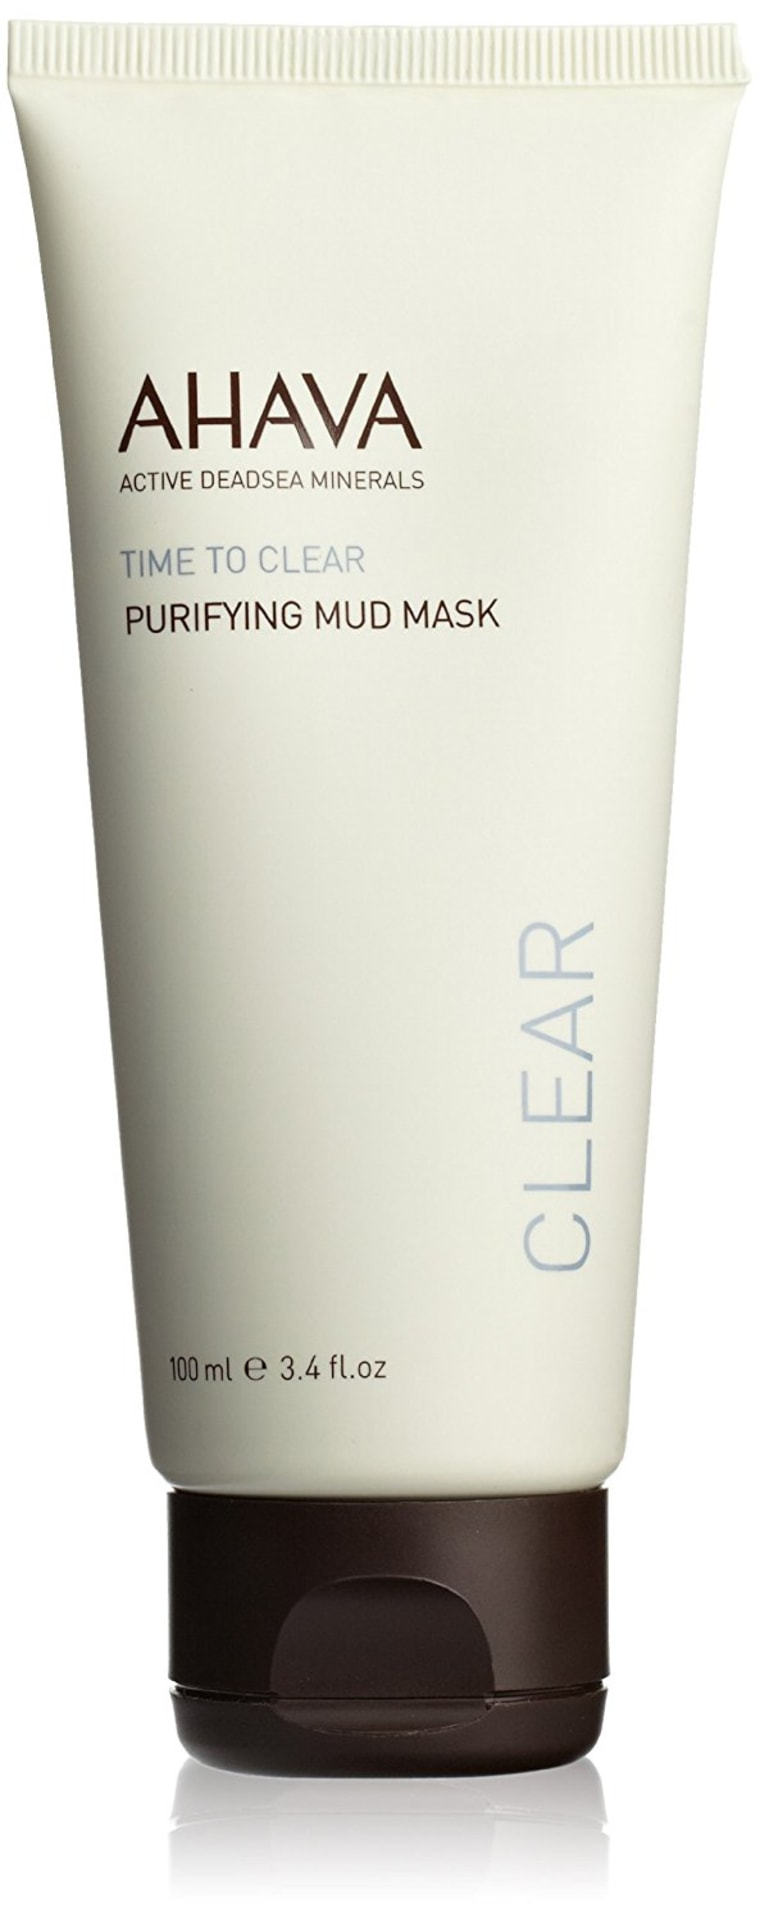 Purifing Mud mask bottle